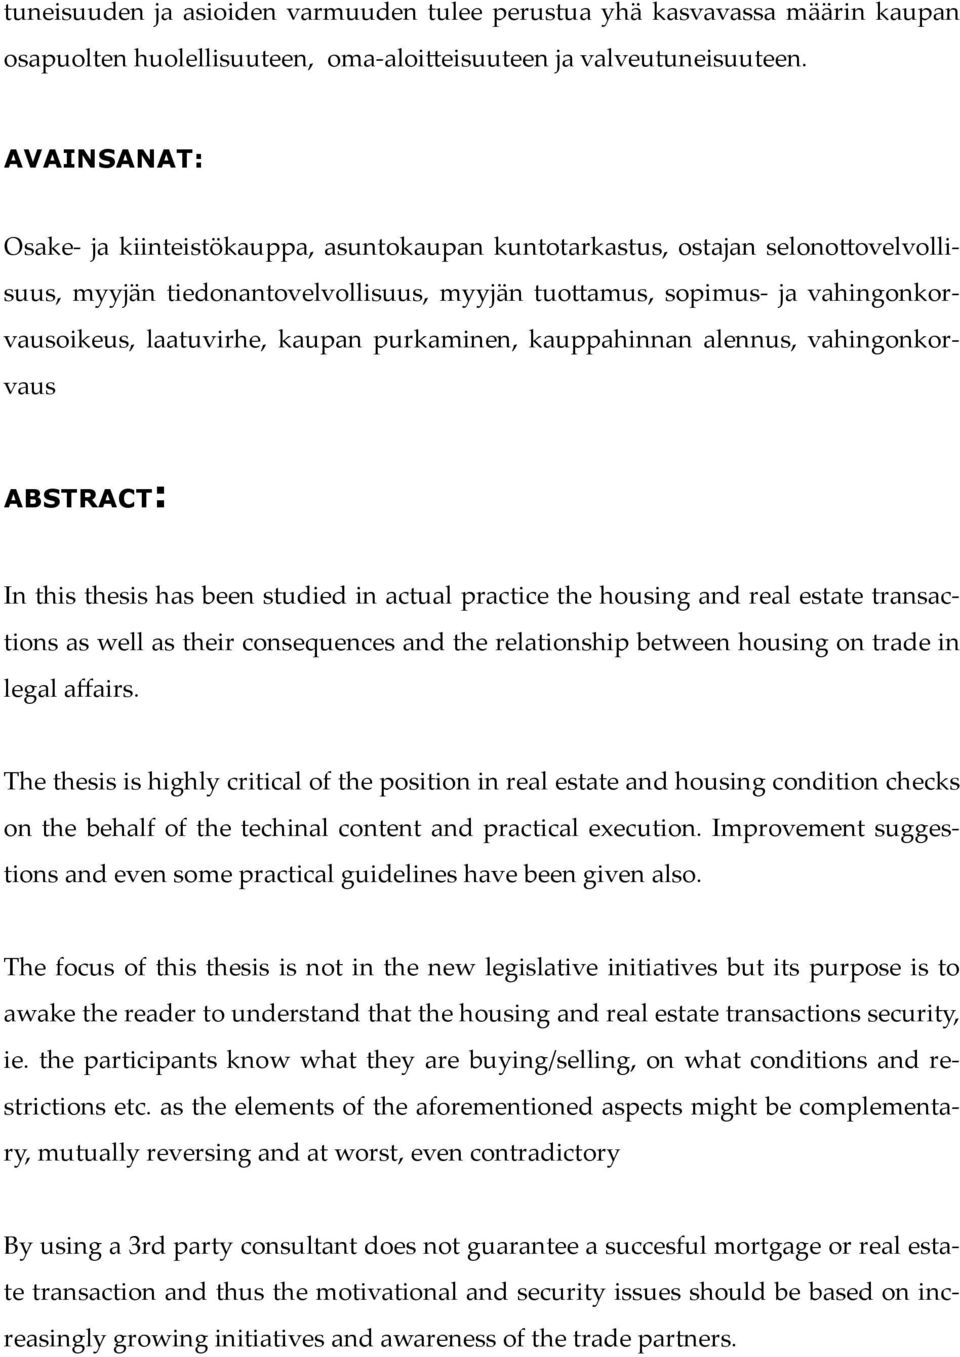 amus, sopimus- ja vahingonkorvausoikeus, laatuvirhe, kaupan purkaminen, kauppahinnan alennus, vahingonkorvaus ABSTRACT: In this thesis has been studied in actual practice the housing and real estate